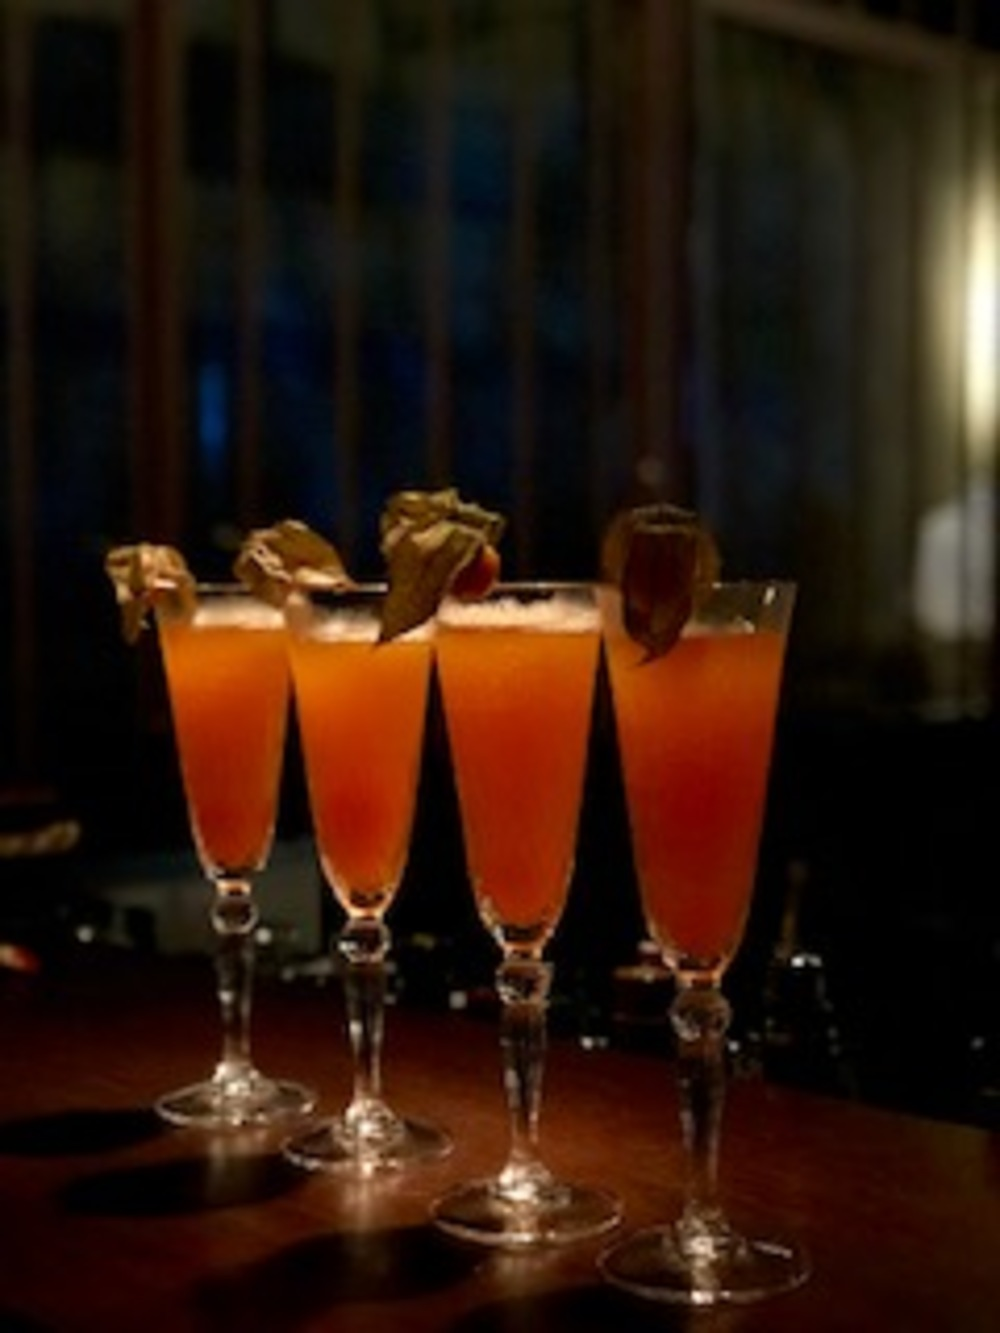 A row of Chinese Lantern cocktails